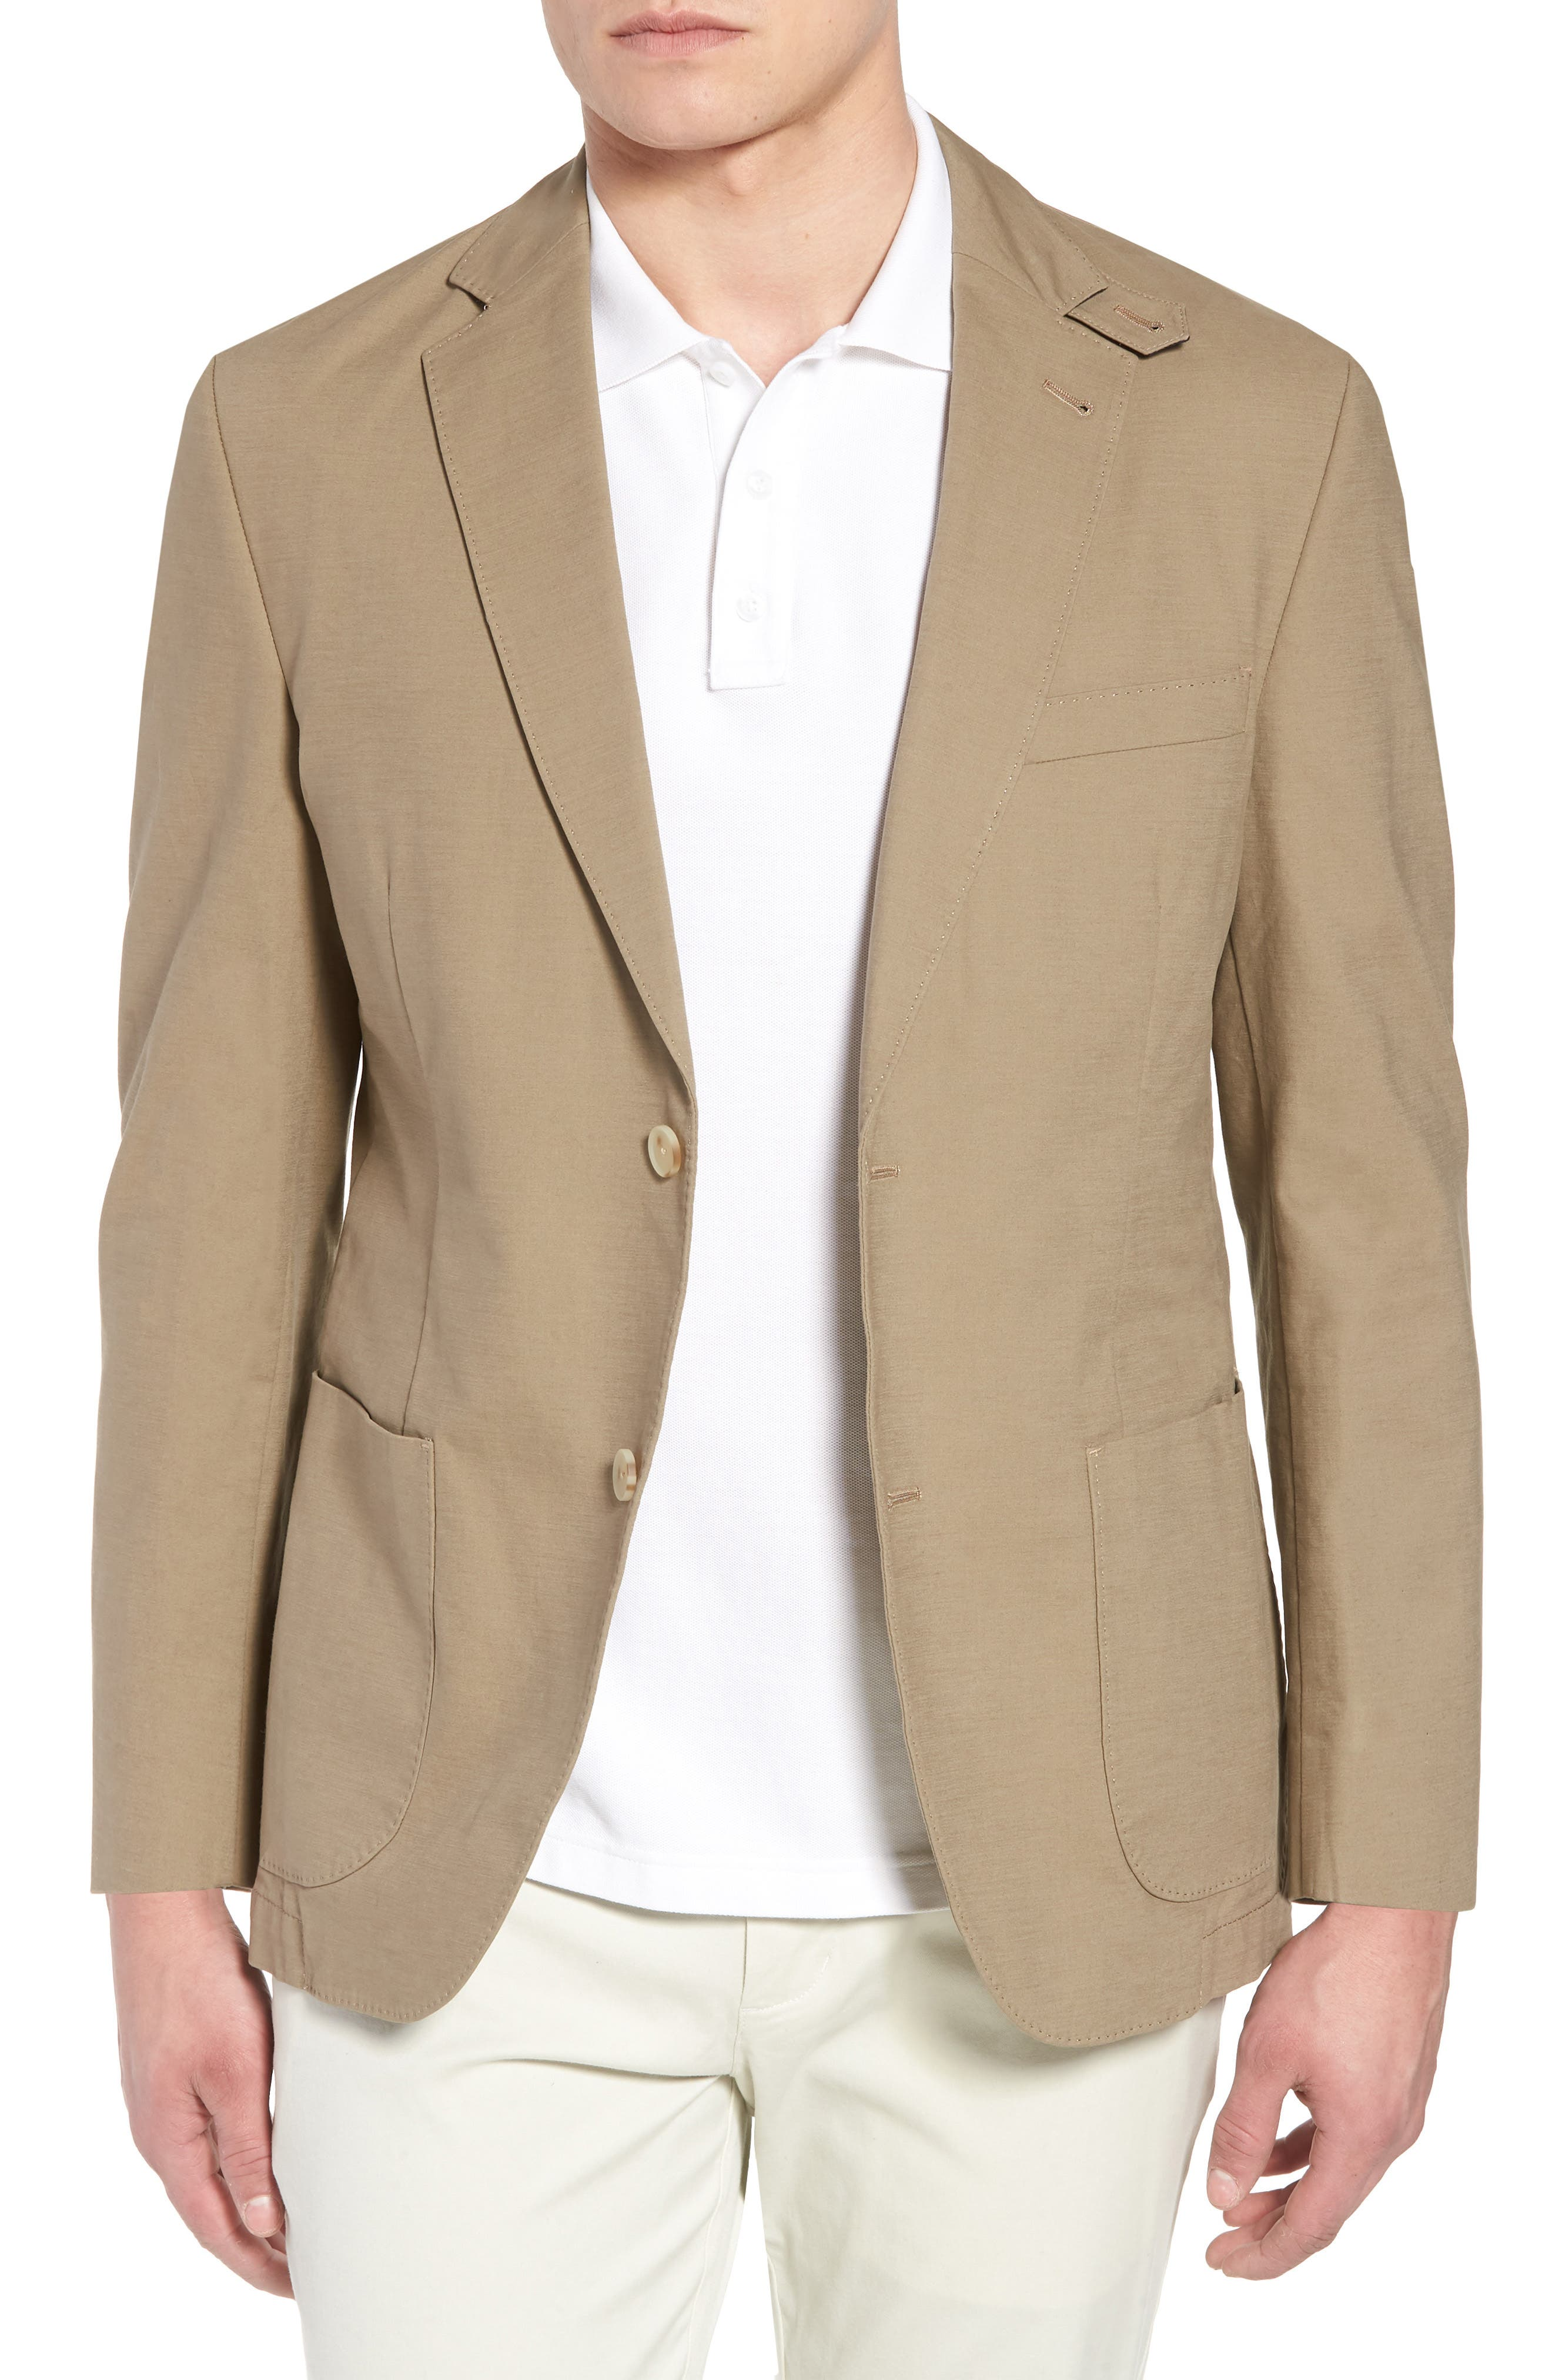 Kroon Bono AIM Classic Fit Stretch Cotton Blazer